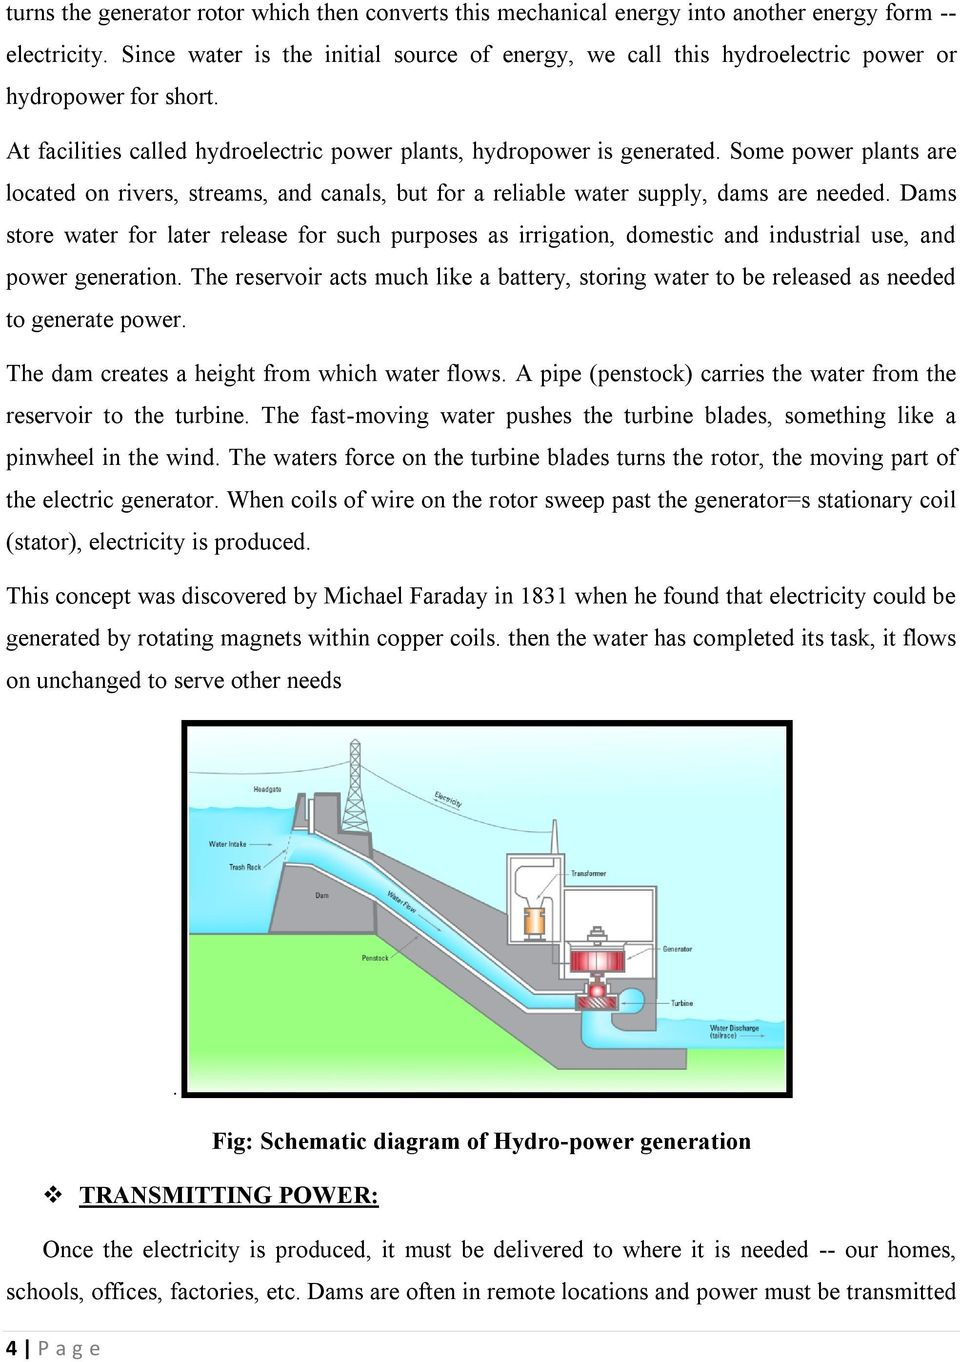 Coal Power Plant Diagram Hydroelectric Power Plant Schematic Diagram Wiring Library